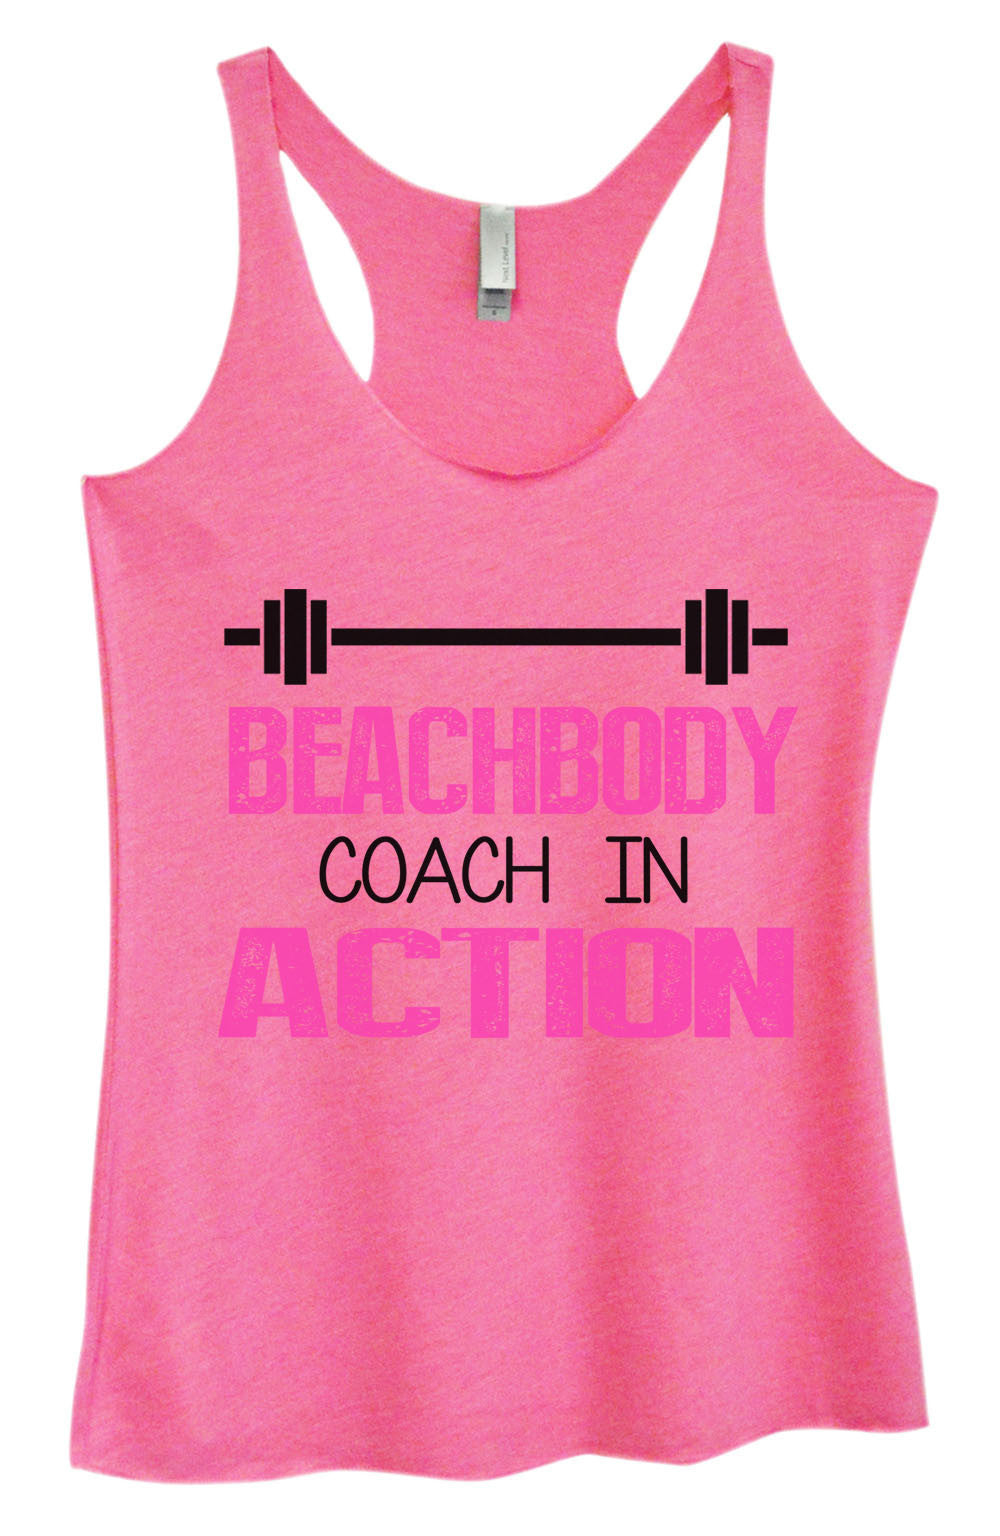 Womens Fashion Triblend Tank Top - Beachbody Coach In Action - Tri-752 - Funny Shirts Tank Tops Burnouts and Triblends  - 4